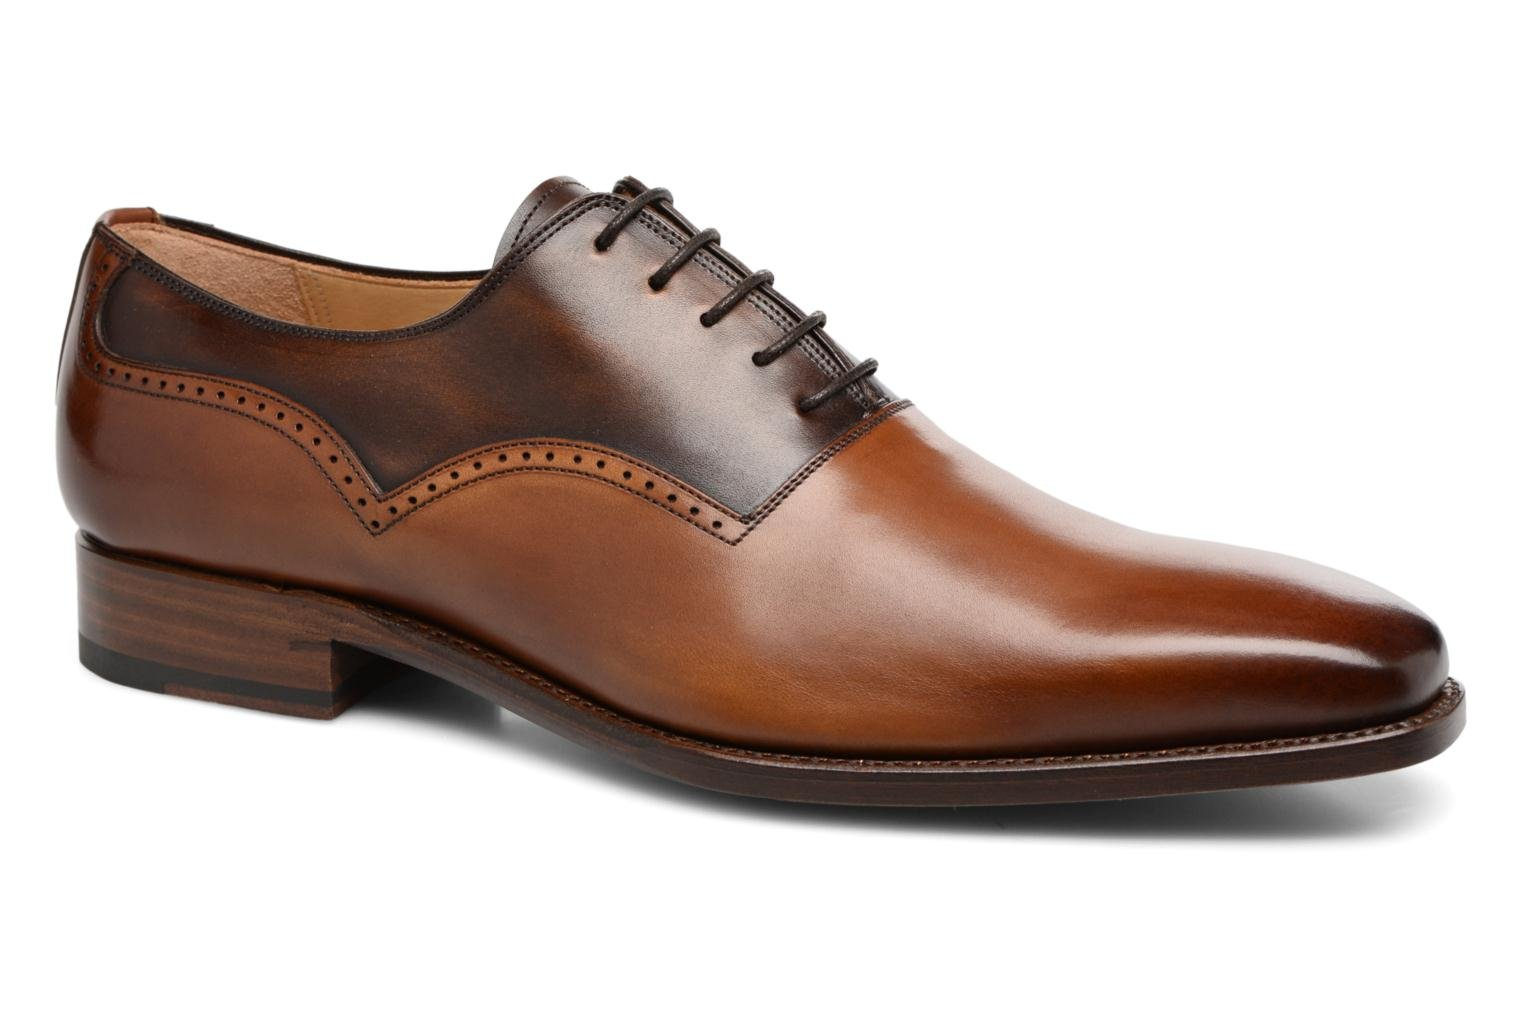 Marques Chaussure luxe homme Marvin&Co Luxe homme Westminster - Cousu Goodyear Elba noce +Elba expresso